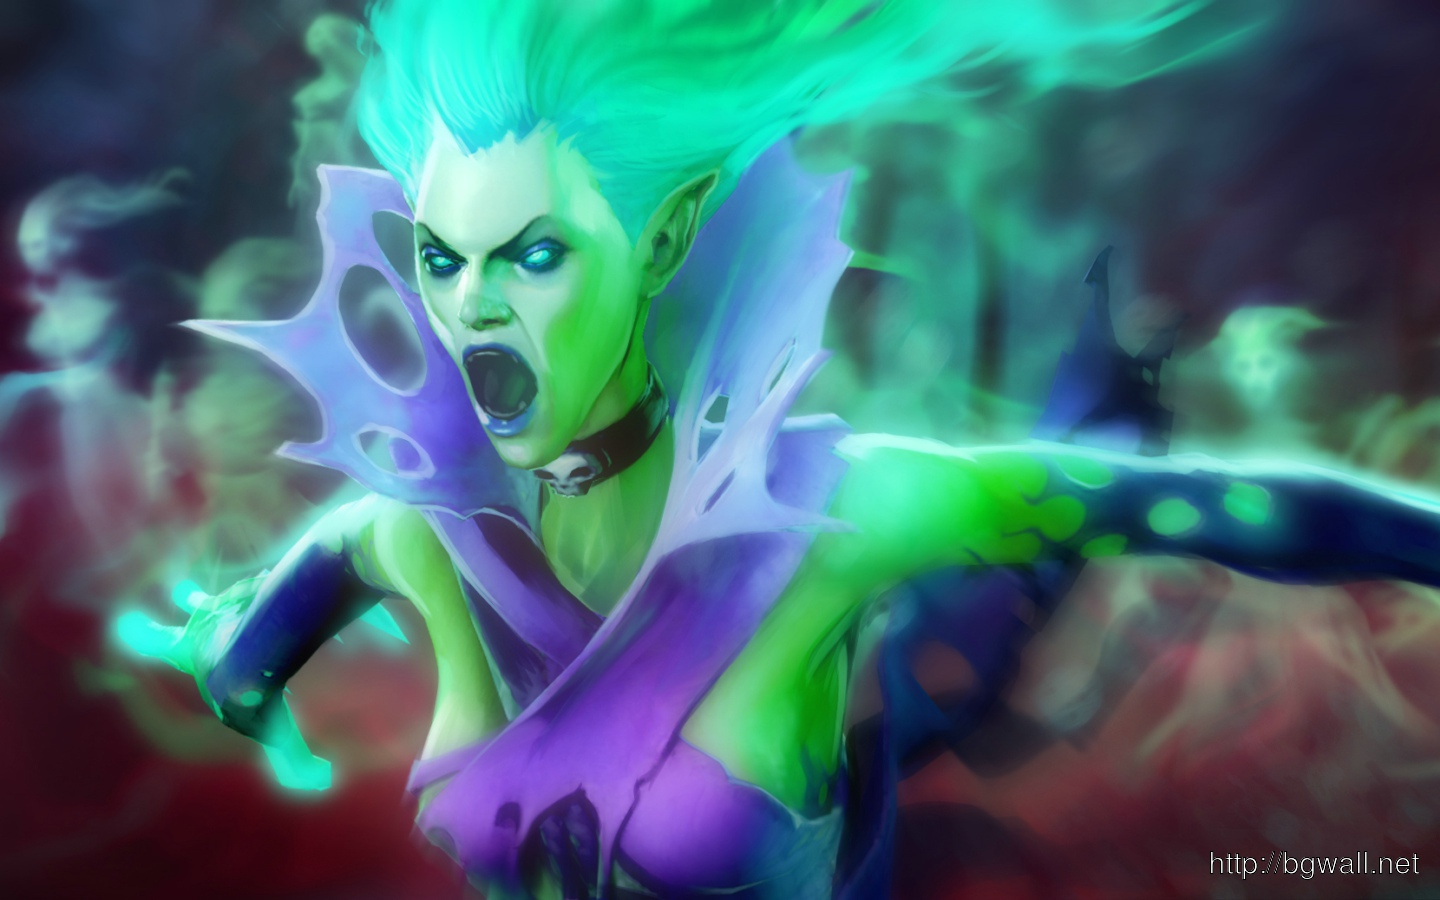 Download Dota 2 1080p Wallpapers High Resolution Full Size